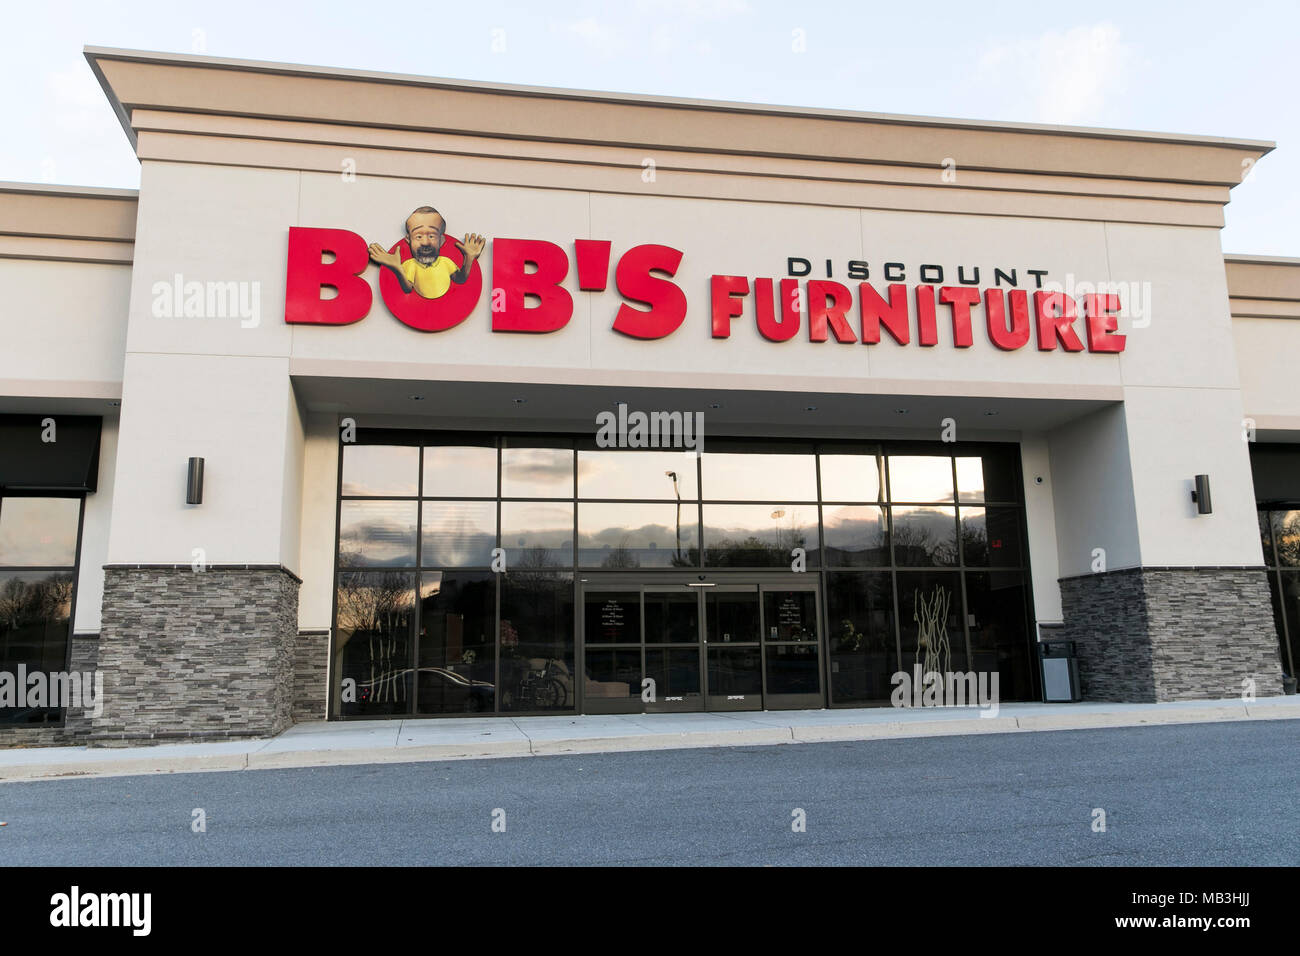 Discount Furniture Store High Resolution Stock Photography and